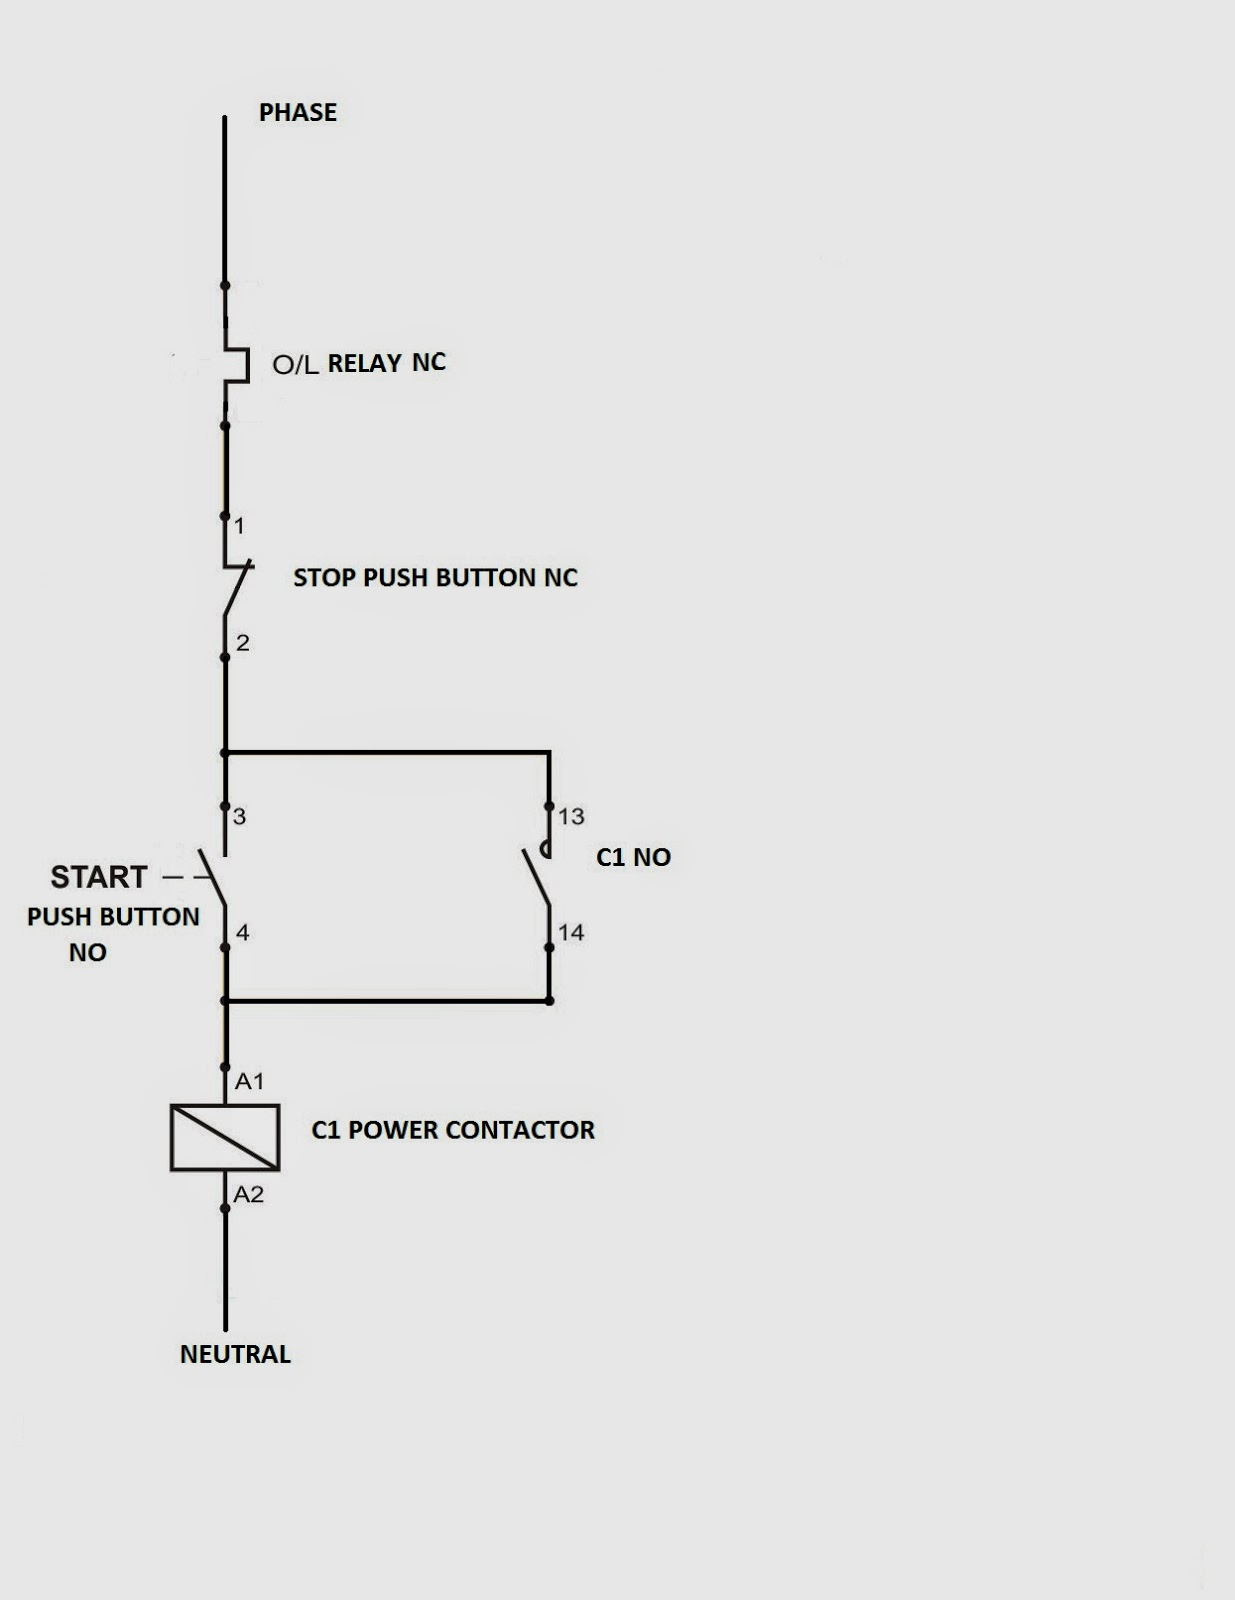 electrical standards direct online dol starterdirect online starter control circuit [ 1235 x 1600 Pixel ]